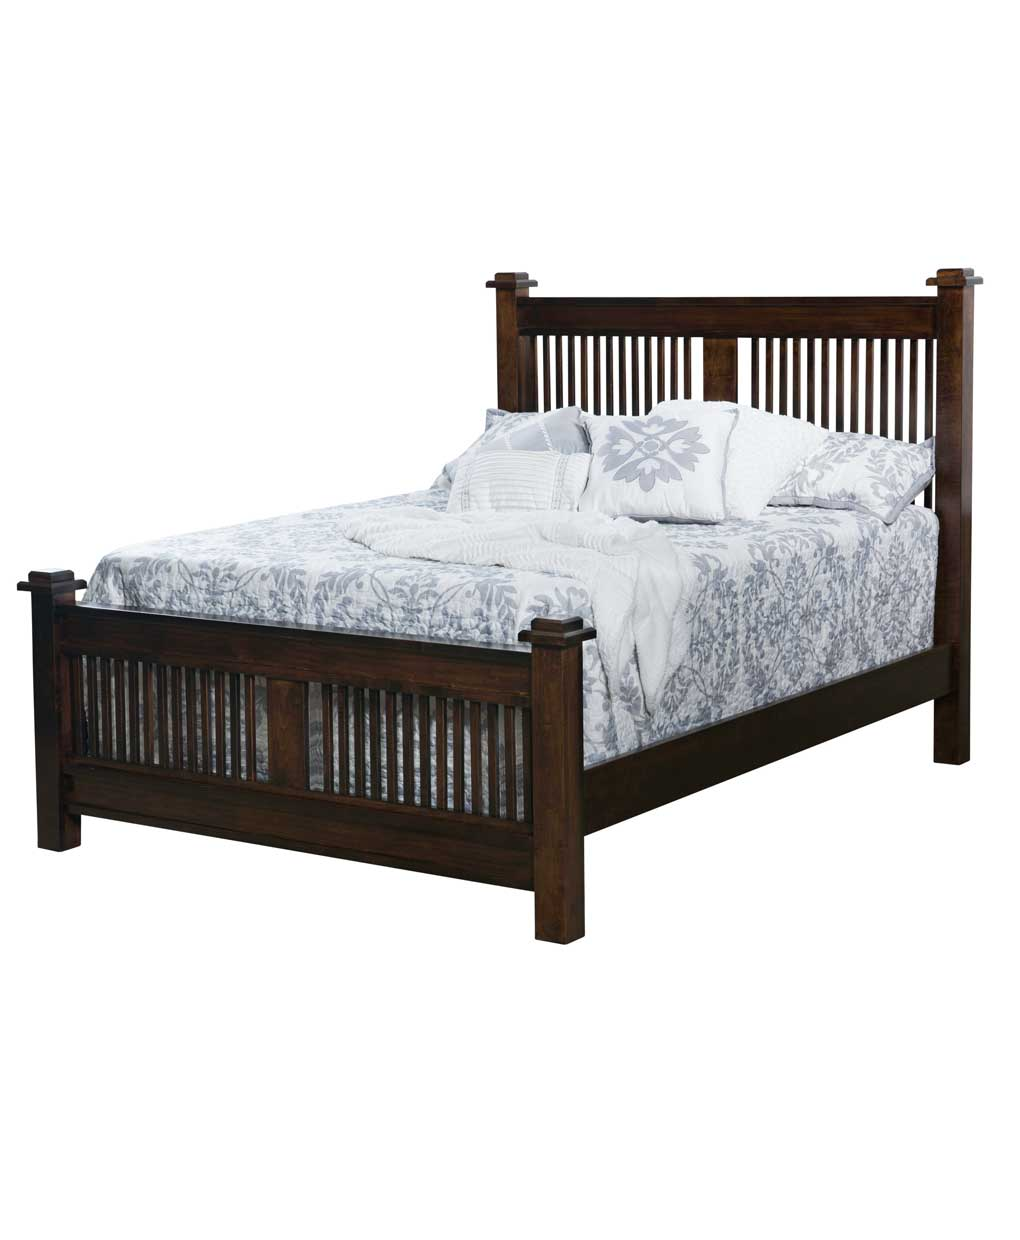 american mission bed amish direct furniture 12431 | it065